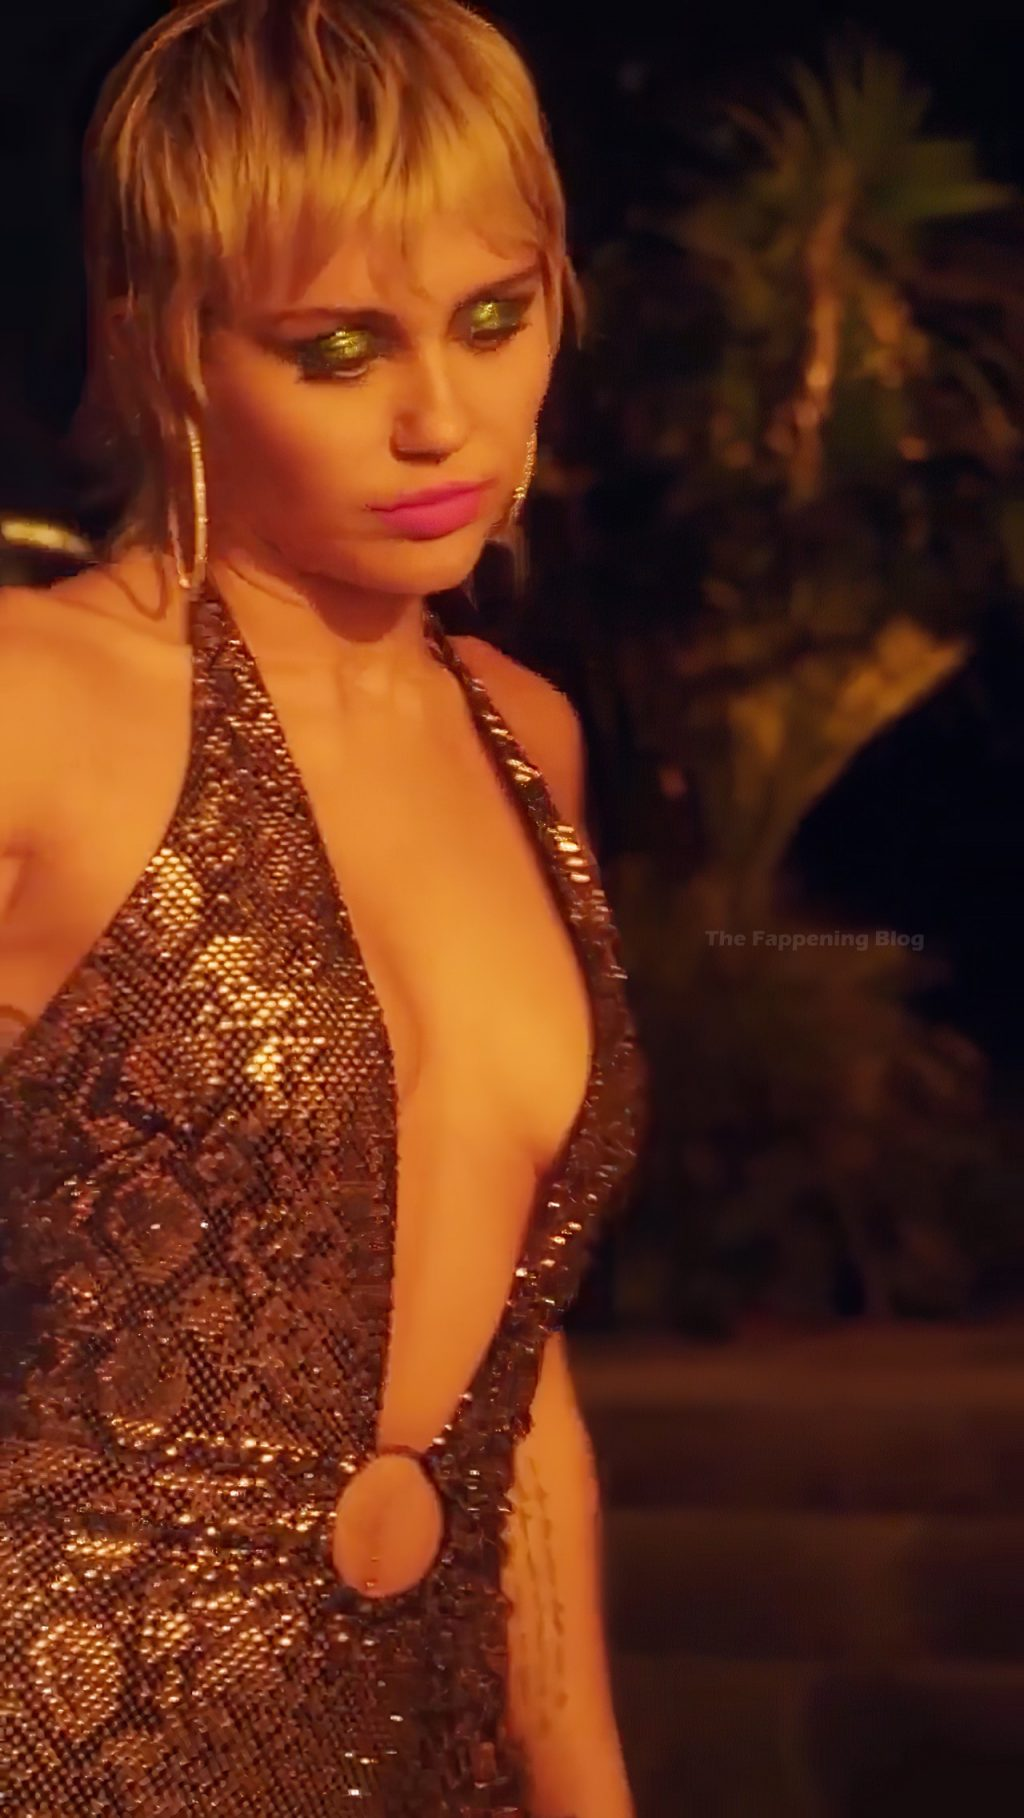 Miley Cyrus Shows Off Her Cleavage on Stage (4 Pics + Video)